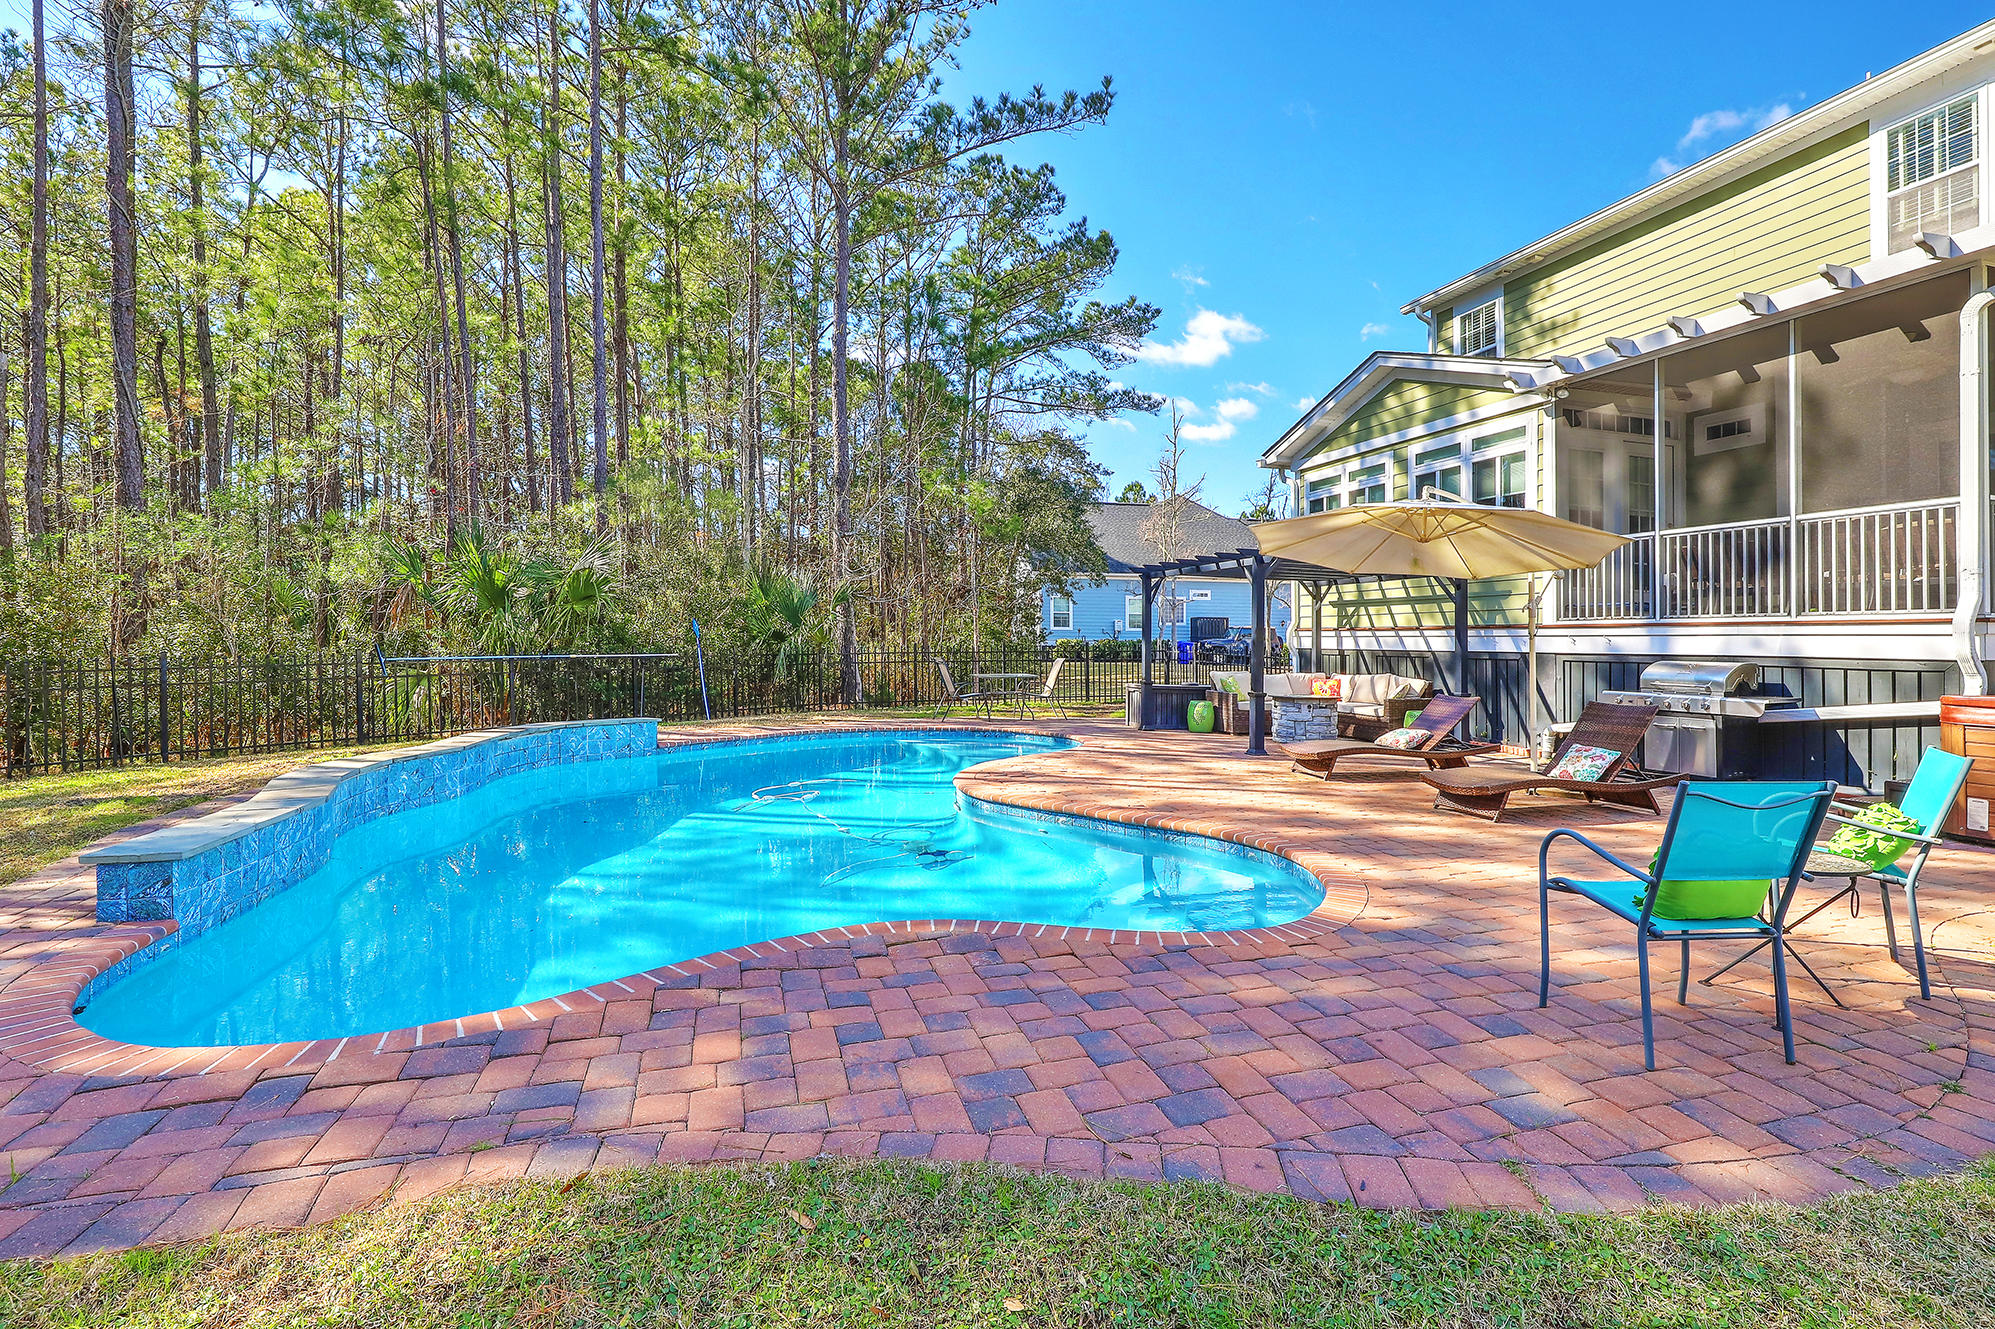 Rivertowne On The Wando Homes For Sale - 2105 Sandy Point, Mount Pleasant, SC - 69